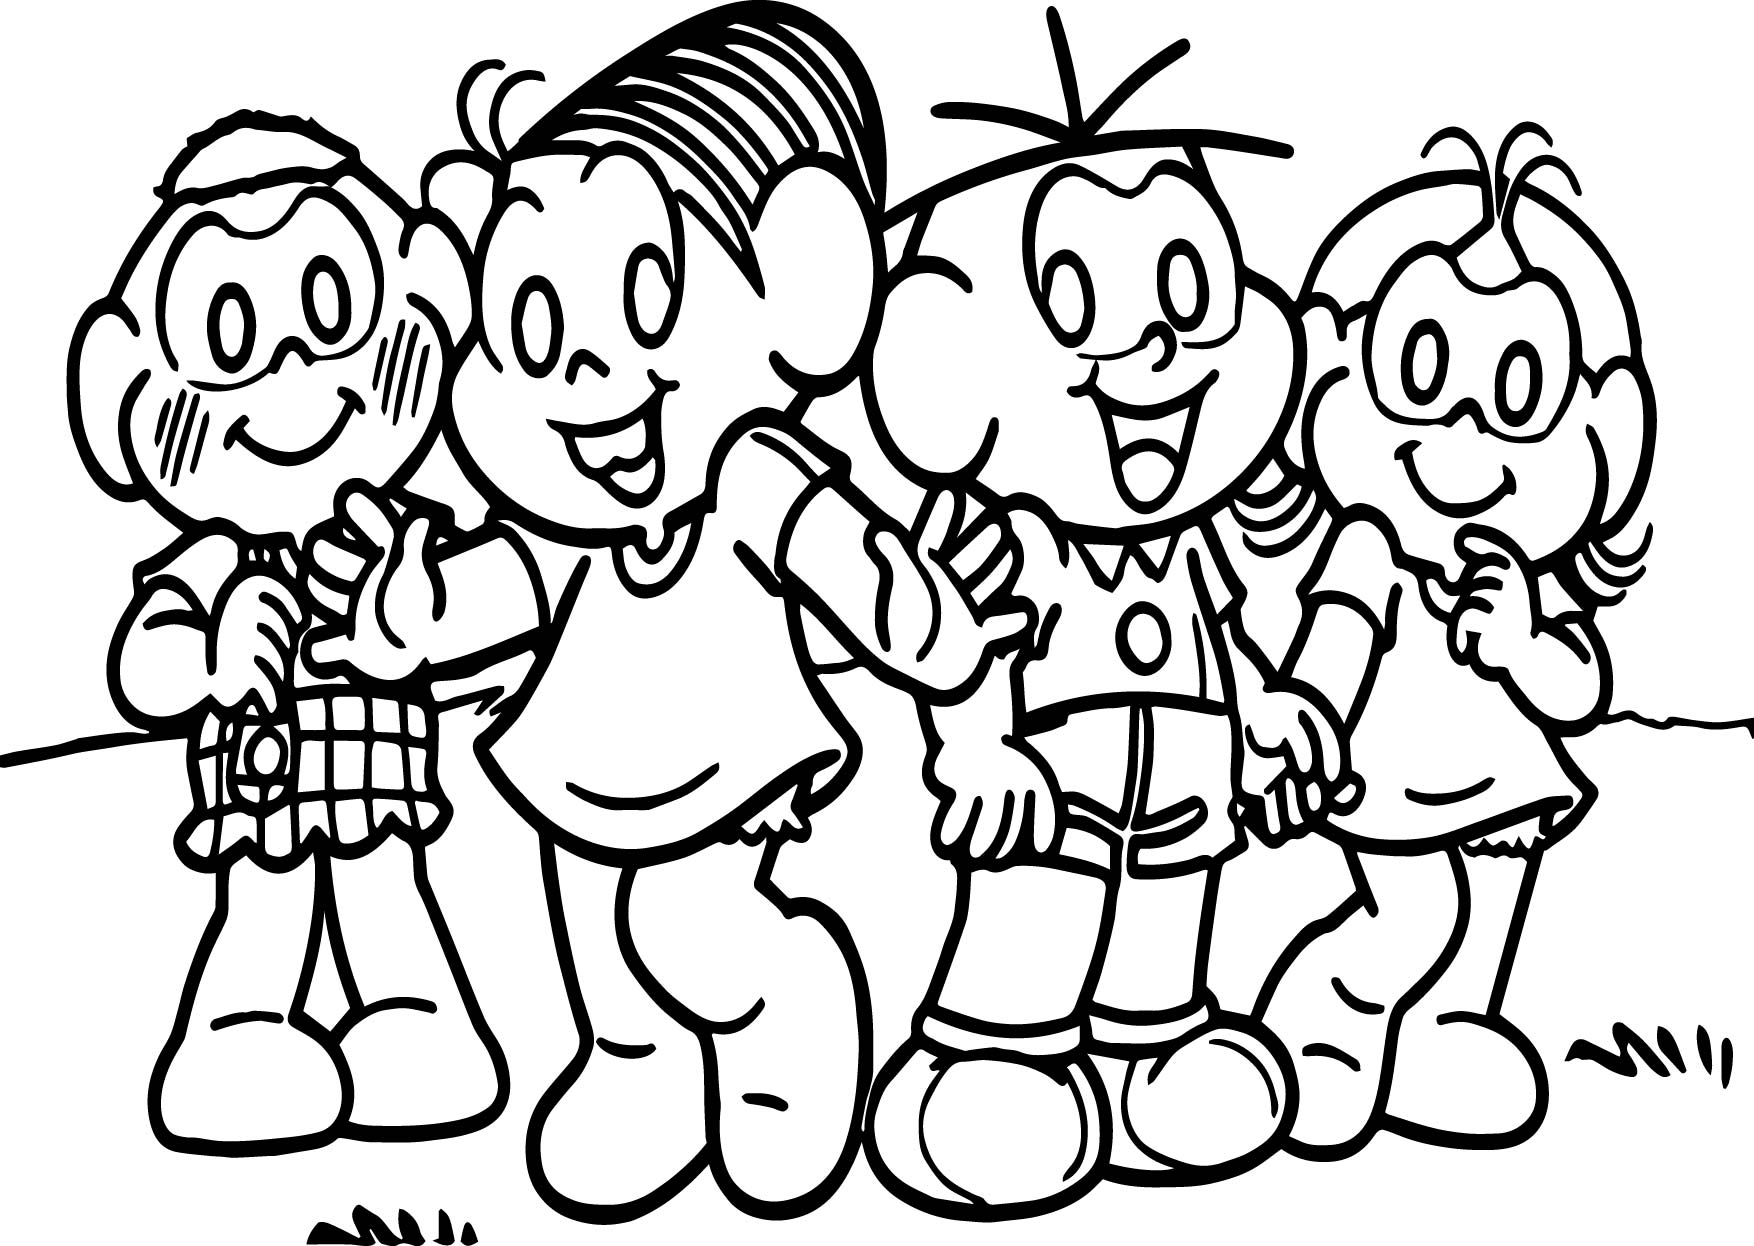 Turma Da Monica And Friends On Grass Coloring Page | Wecoloringpage